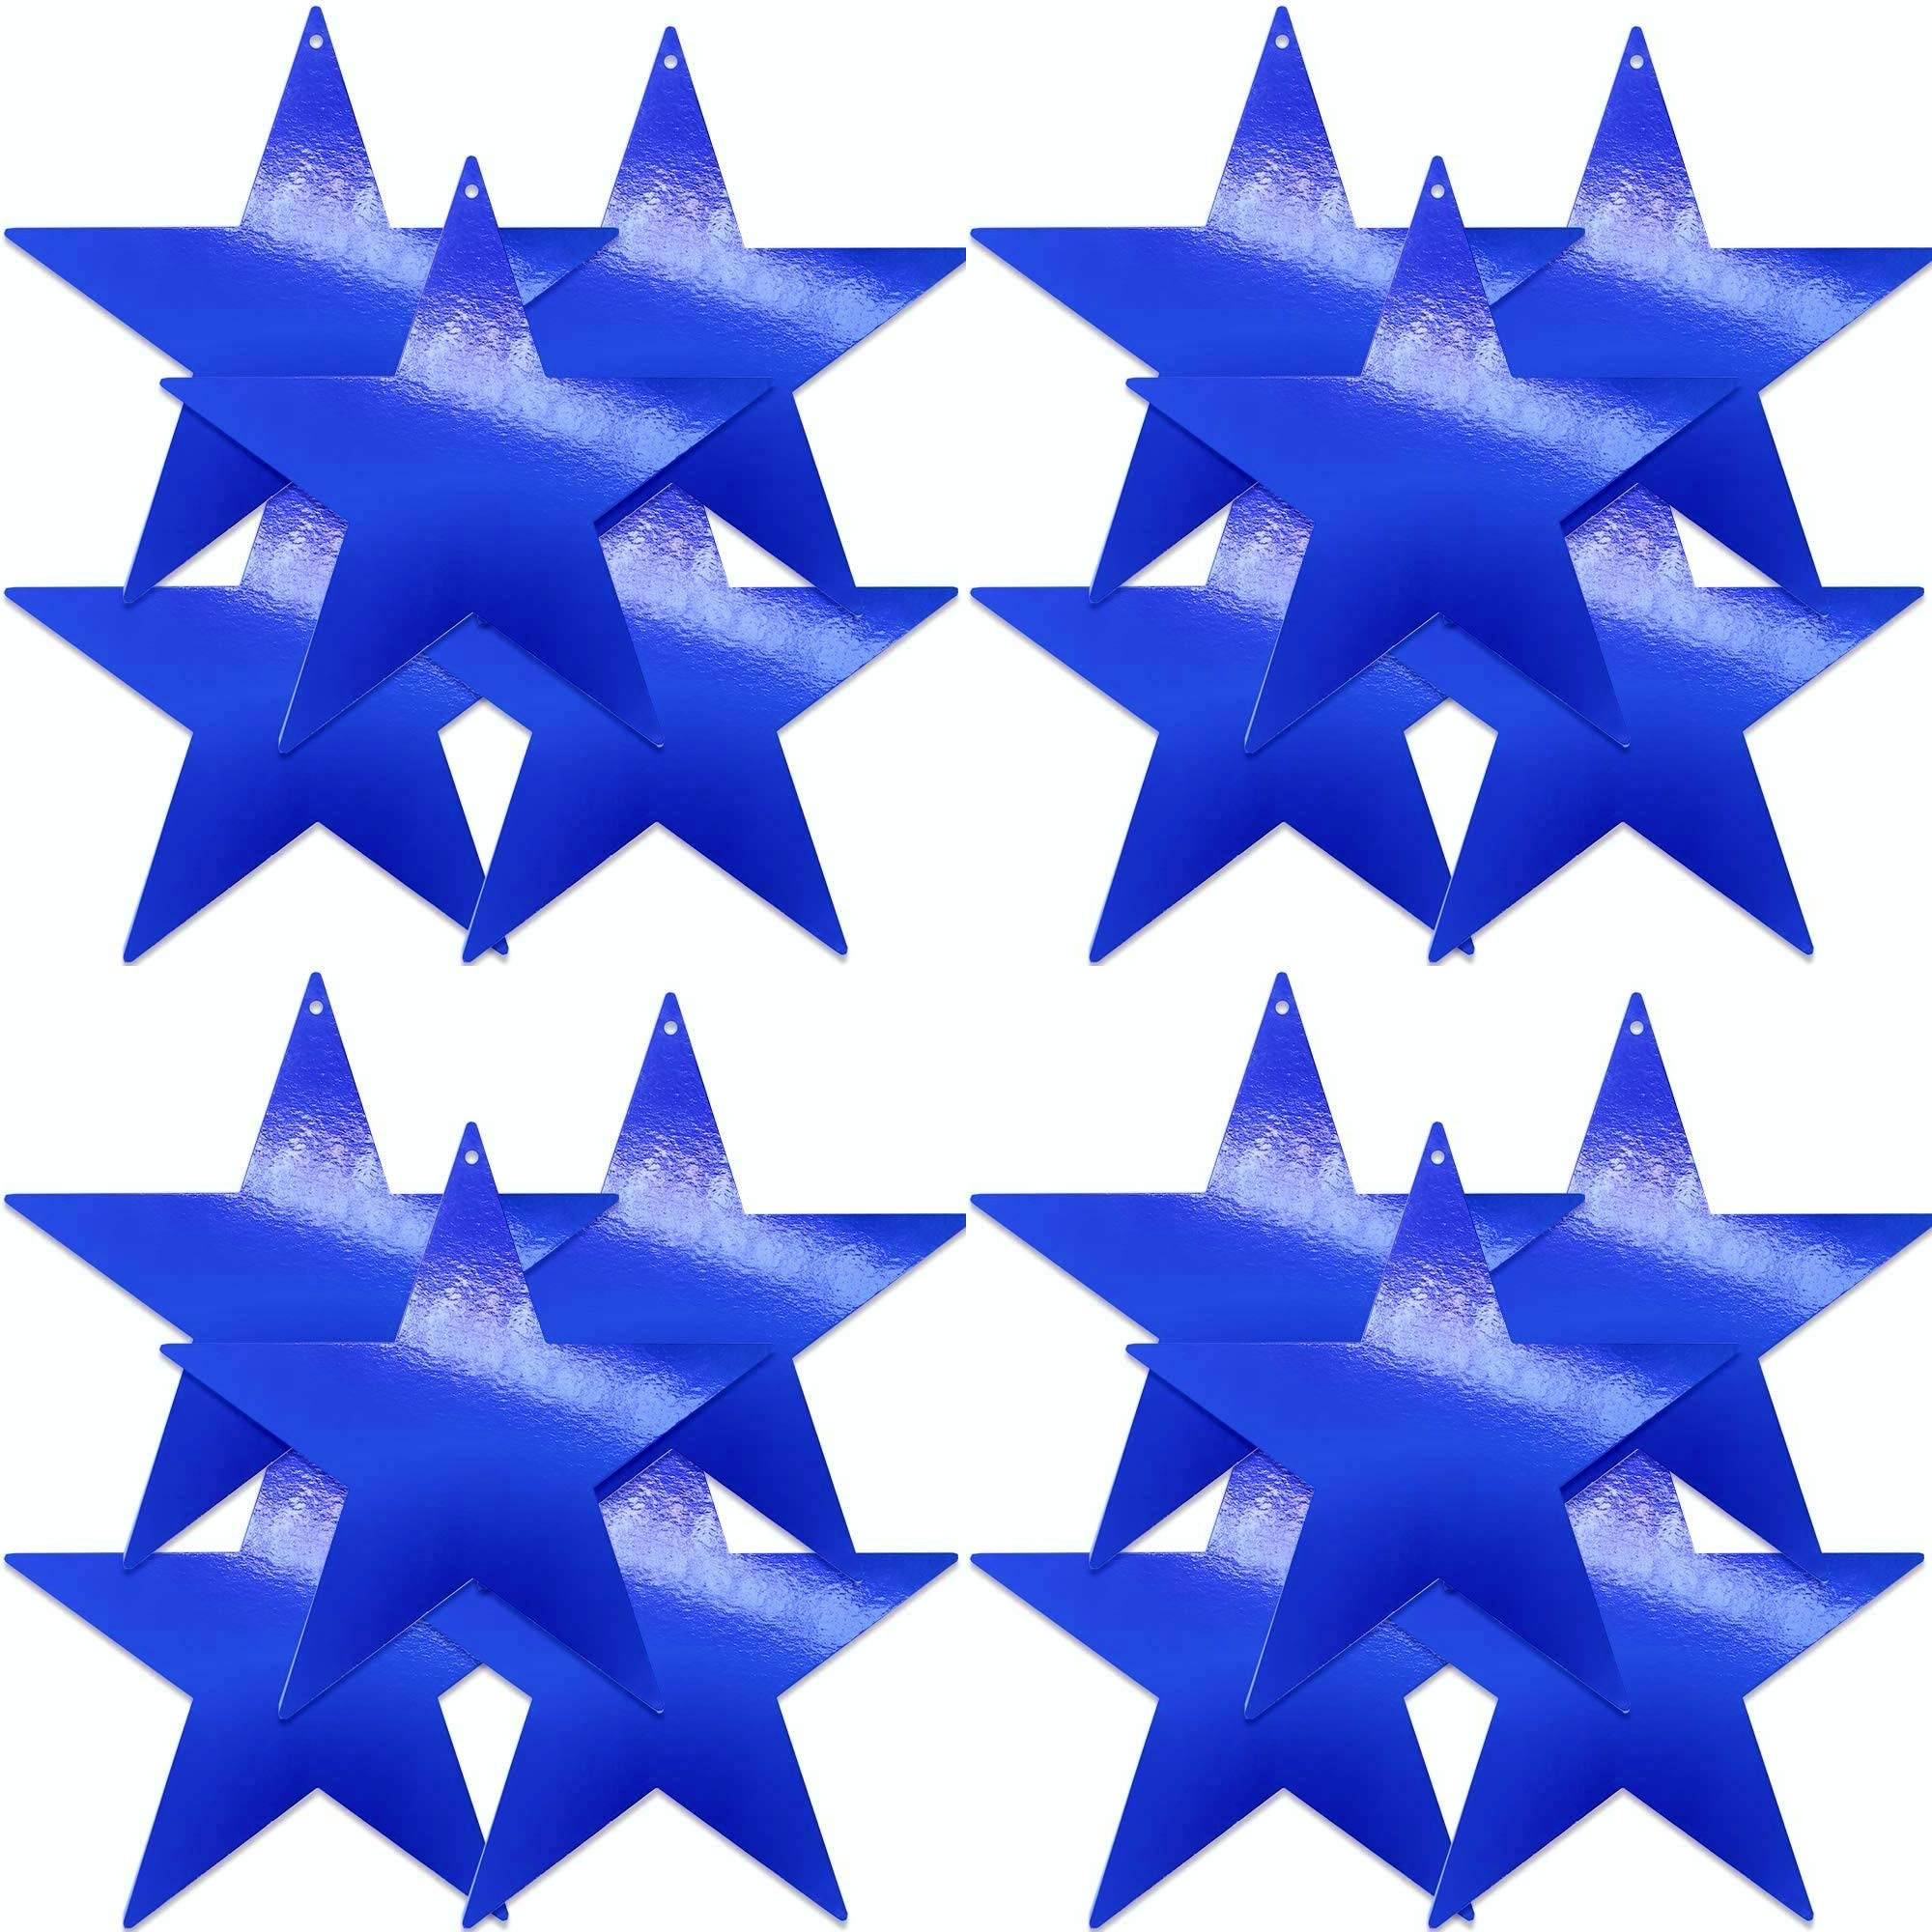 UNIQOOO 20Pcs Metallic Blue Foil Star Cutouts Bulk Accents, Thick Paper Cardboard Pre-Punched Hole, For Kids Birthday Party Favors Banner Garland BackDrop Decor, Classroom Bulletin Board Craft, 9 Inch